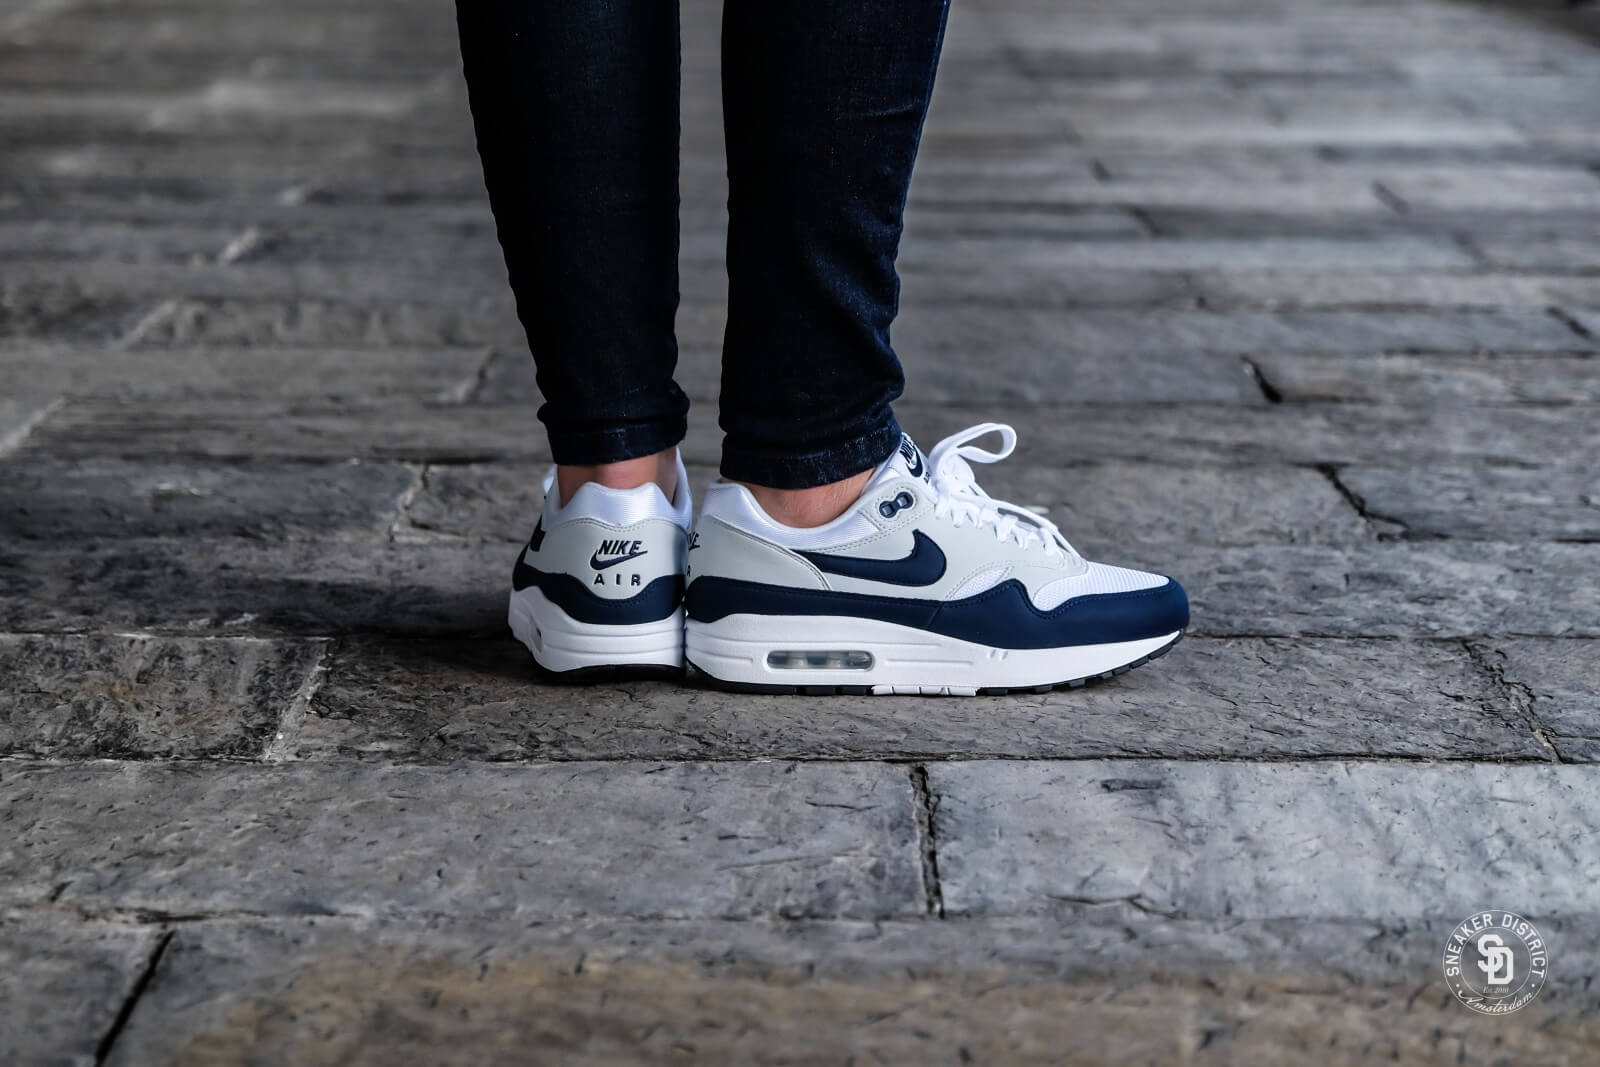 Nike Air Max 90 Infrared 2015 For Sale  d00a6f44d3